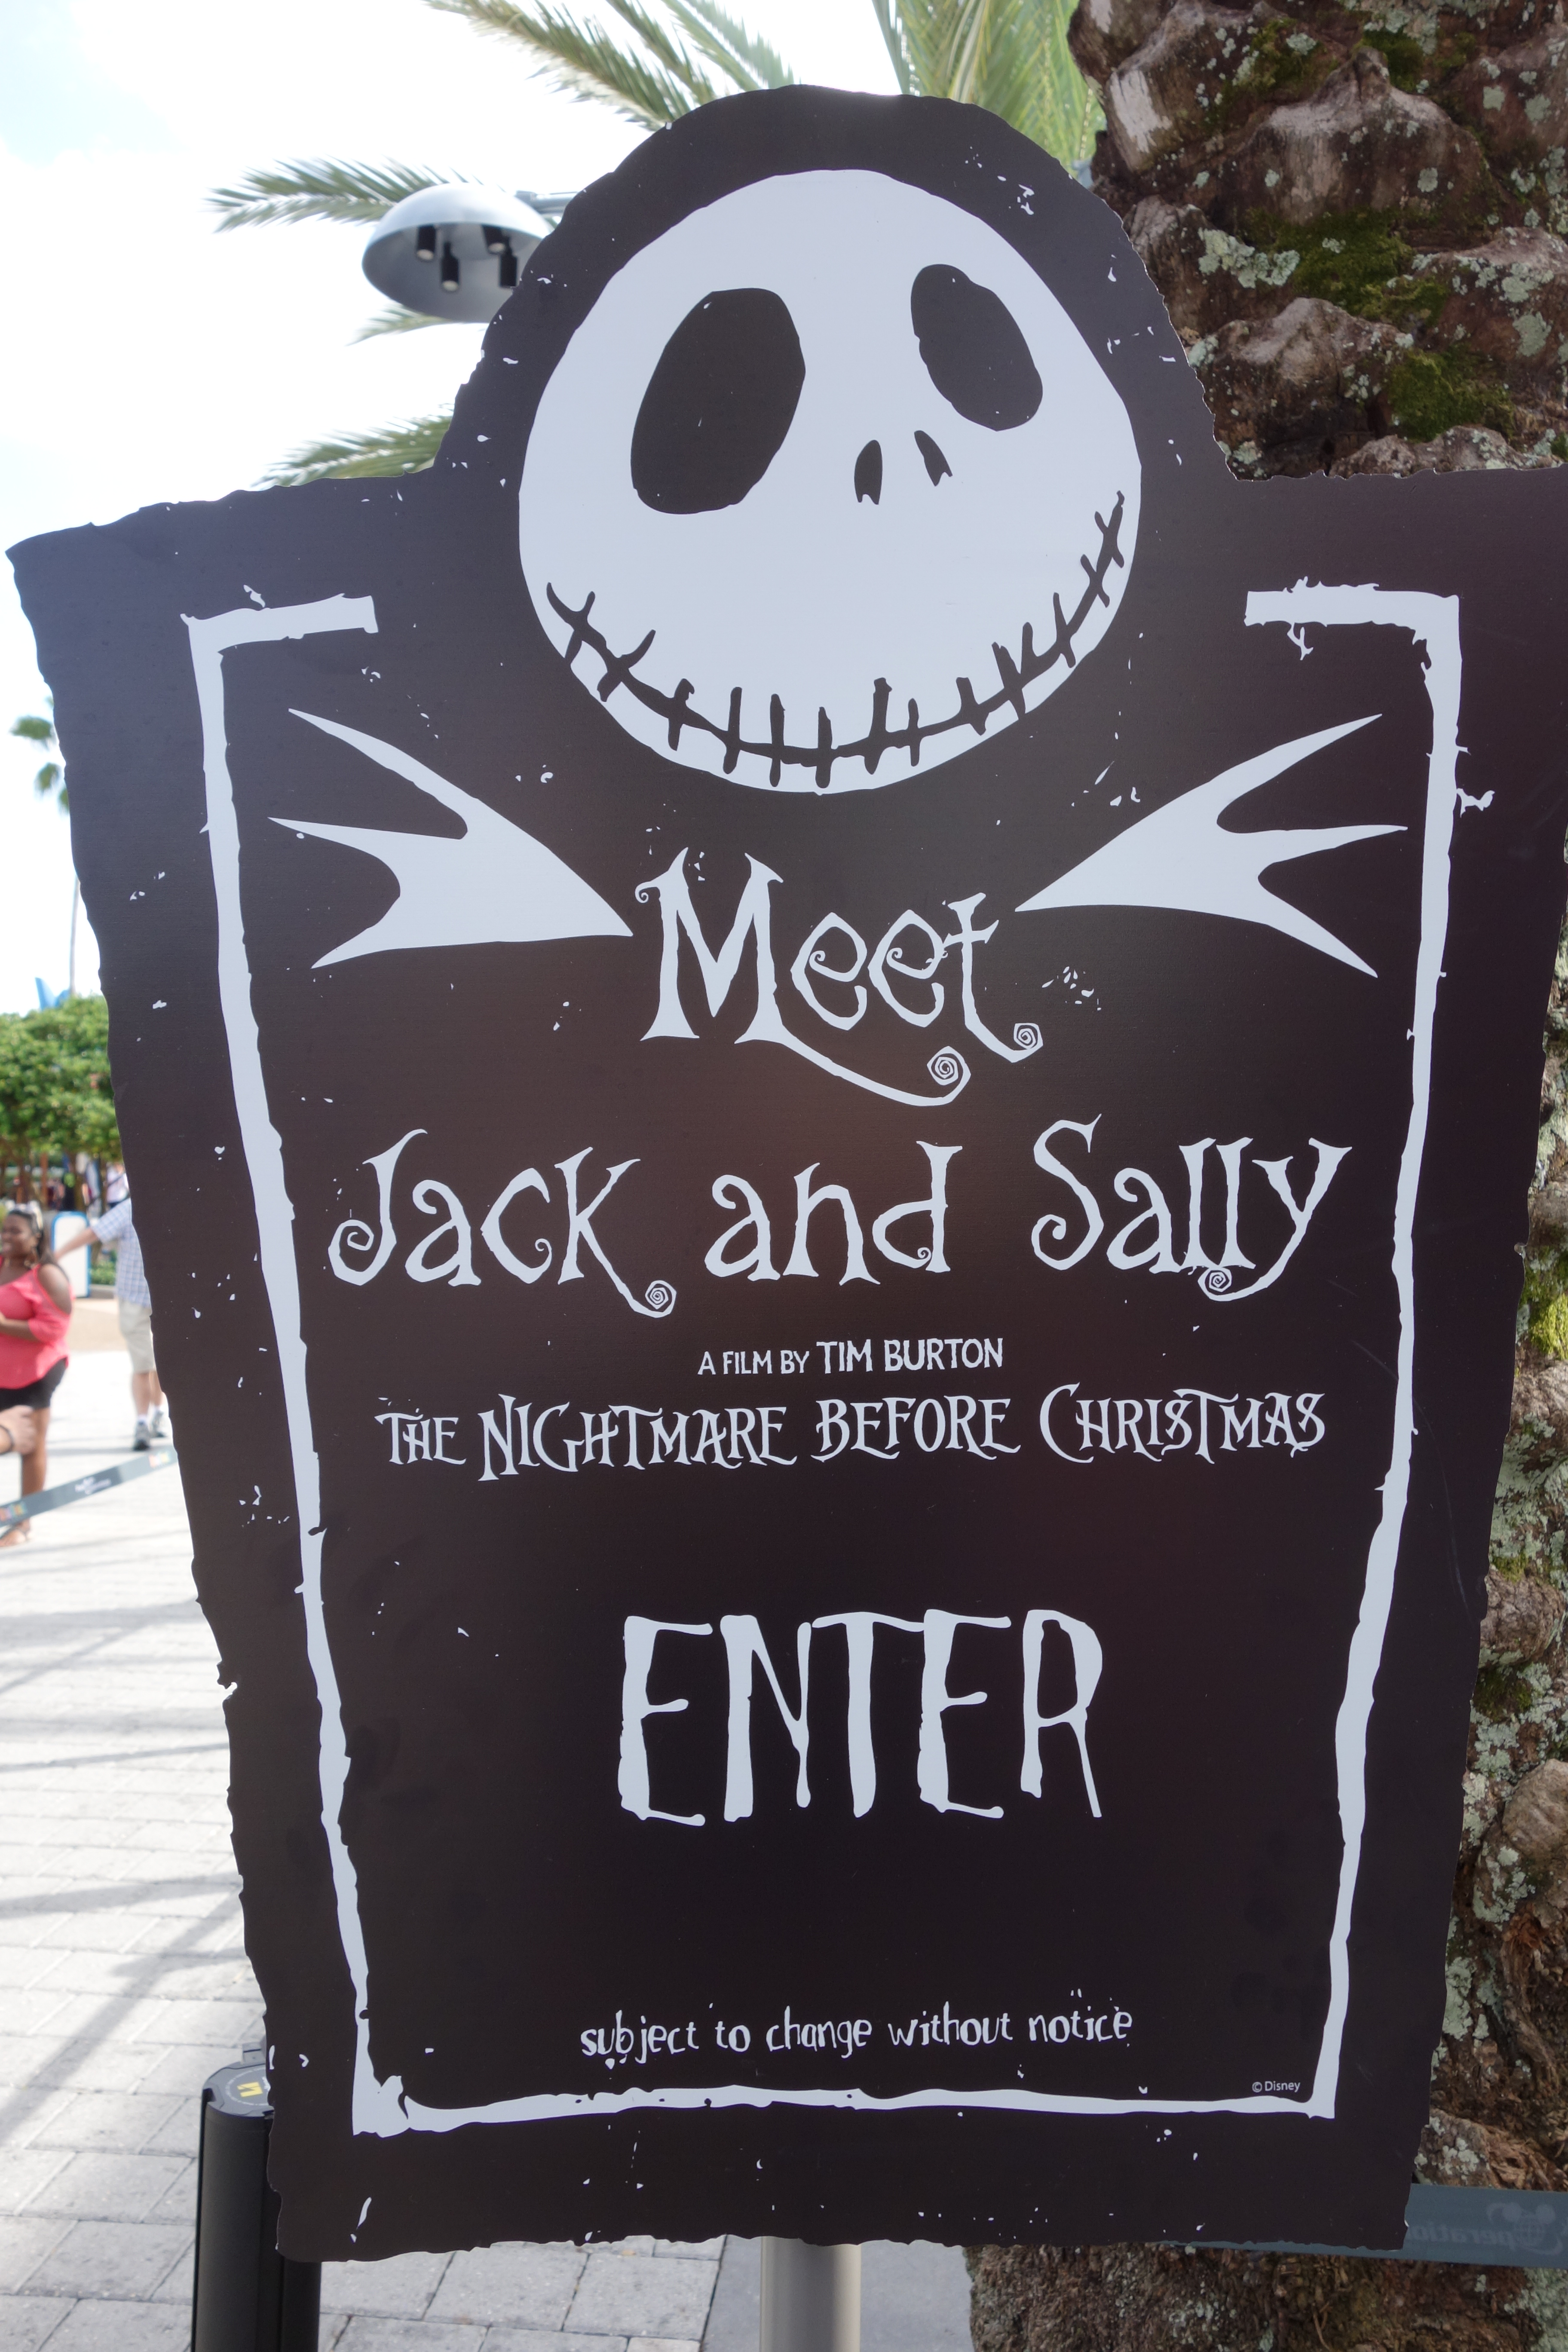 Sally from Nightmare before Christmas | KennythePirate\'s Unofficial ...